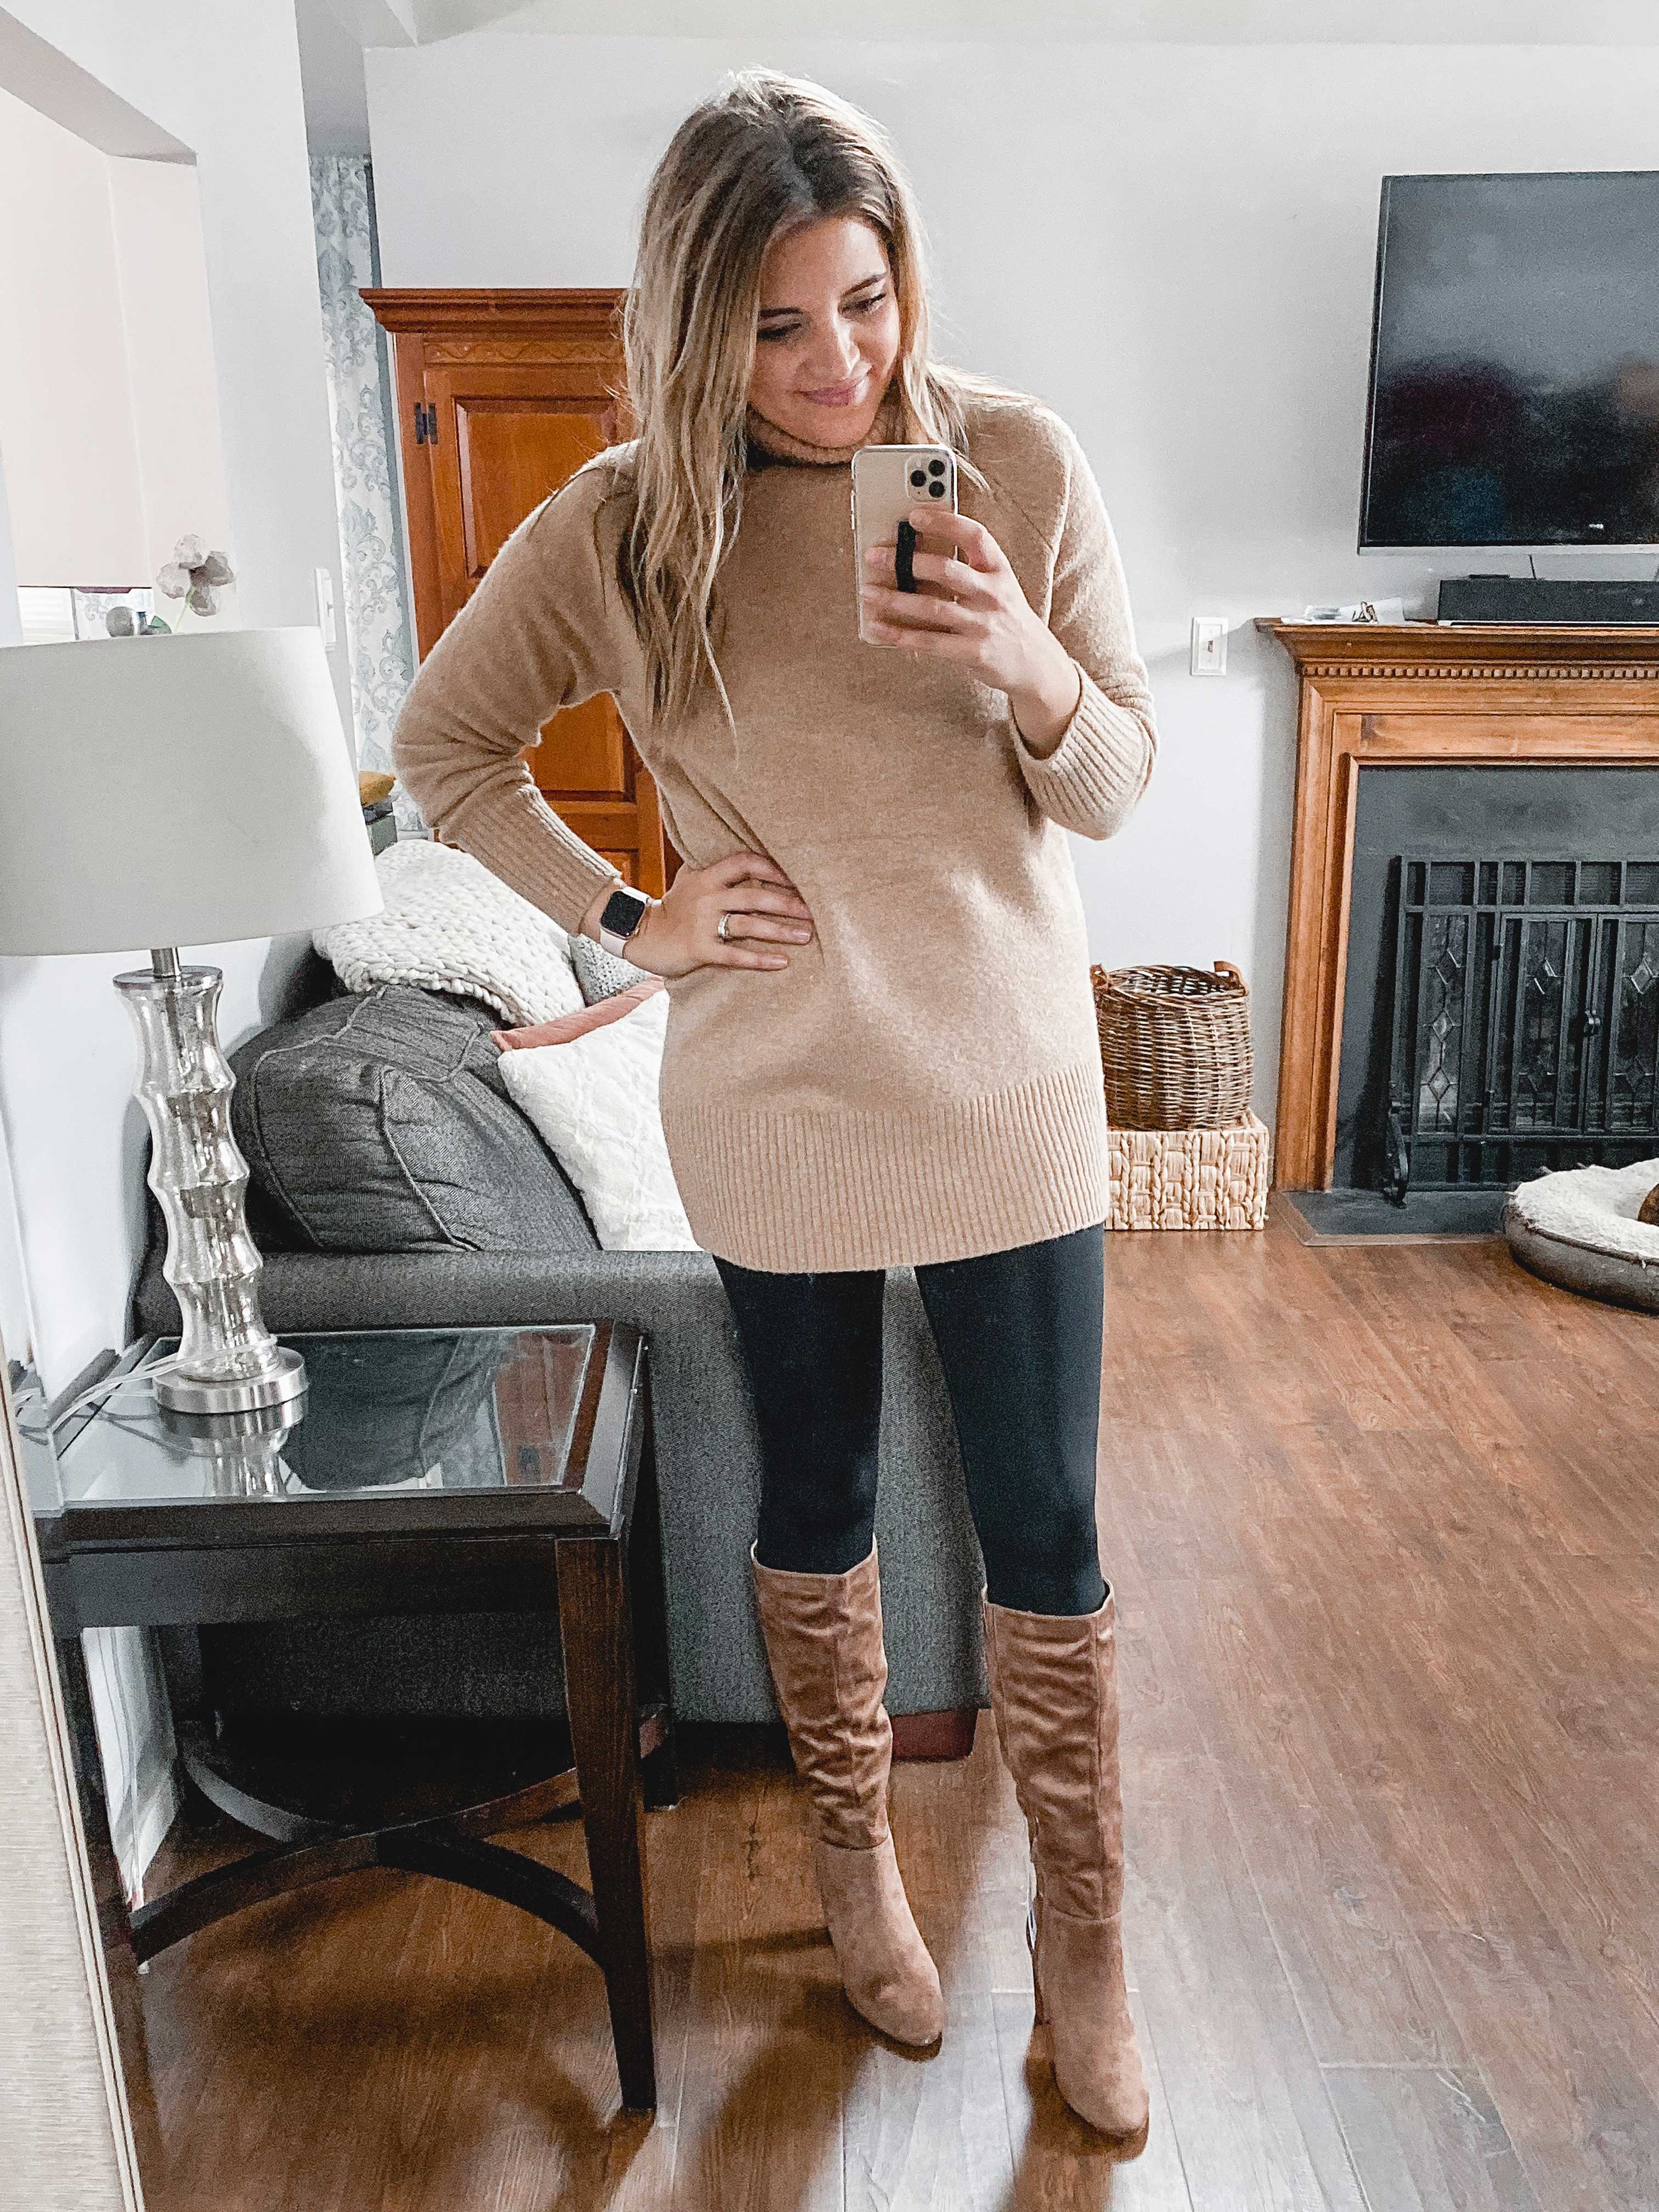 Virginia blogger, Lauren Dix, shares over ten of the cutest Target women's clothes and Target boots in her Fall Target try on!